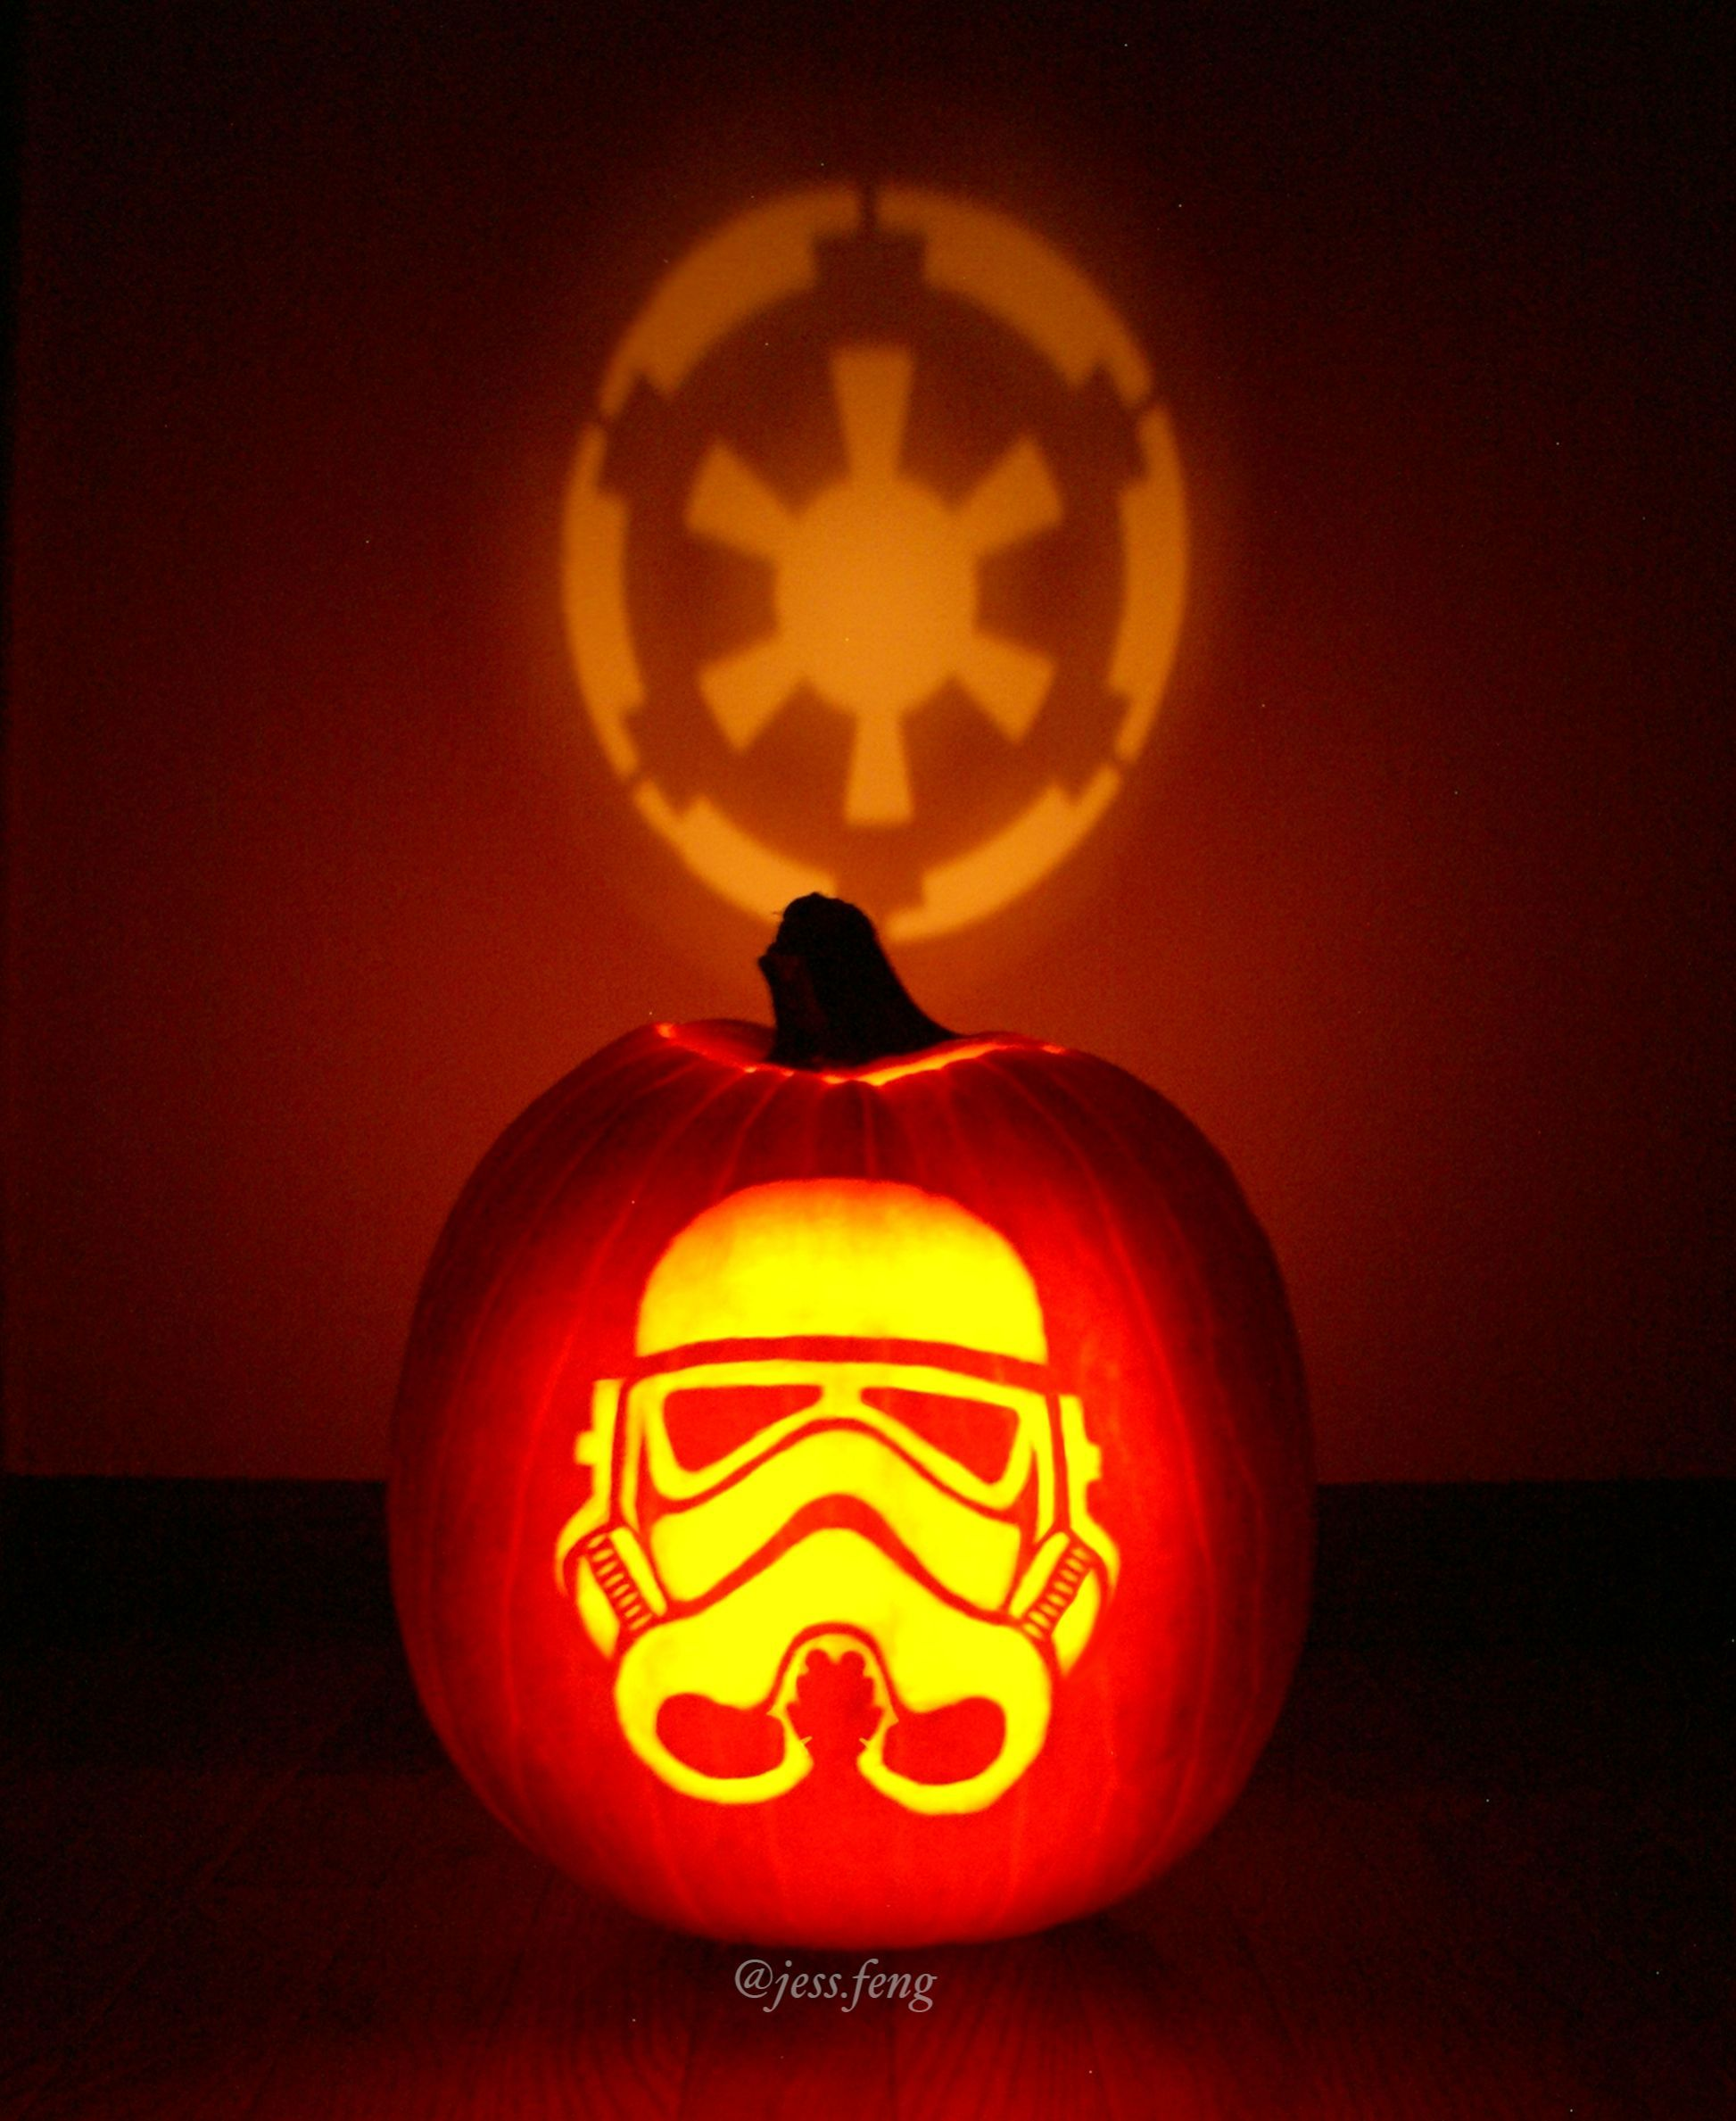 My Stormtrooper Pumpkin Stormtrooper Pumpkin Pumpkin Carving